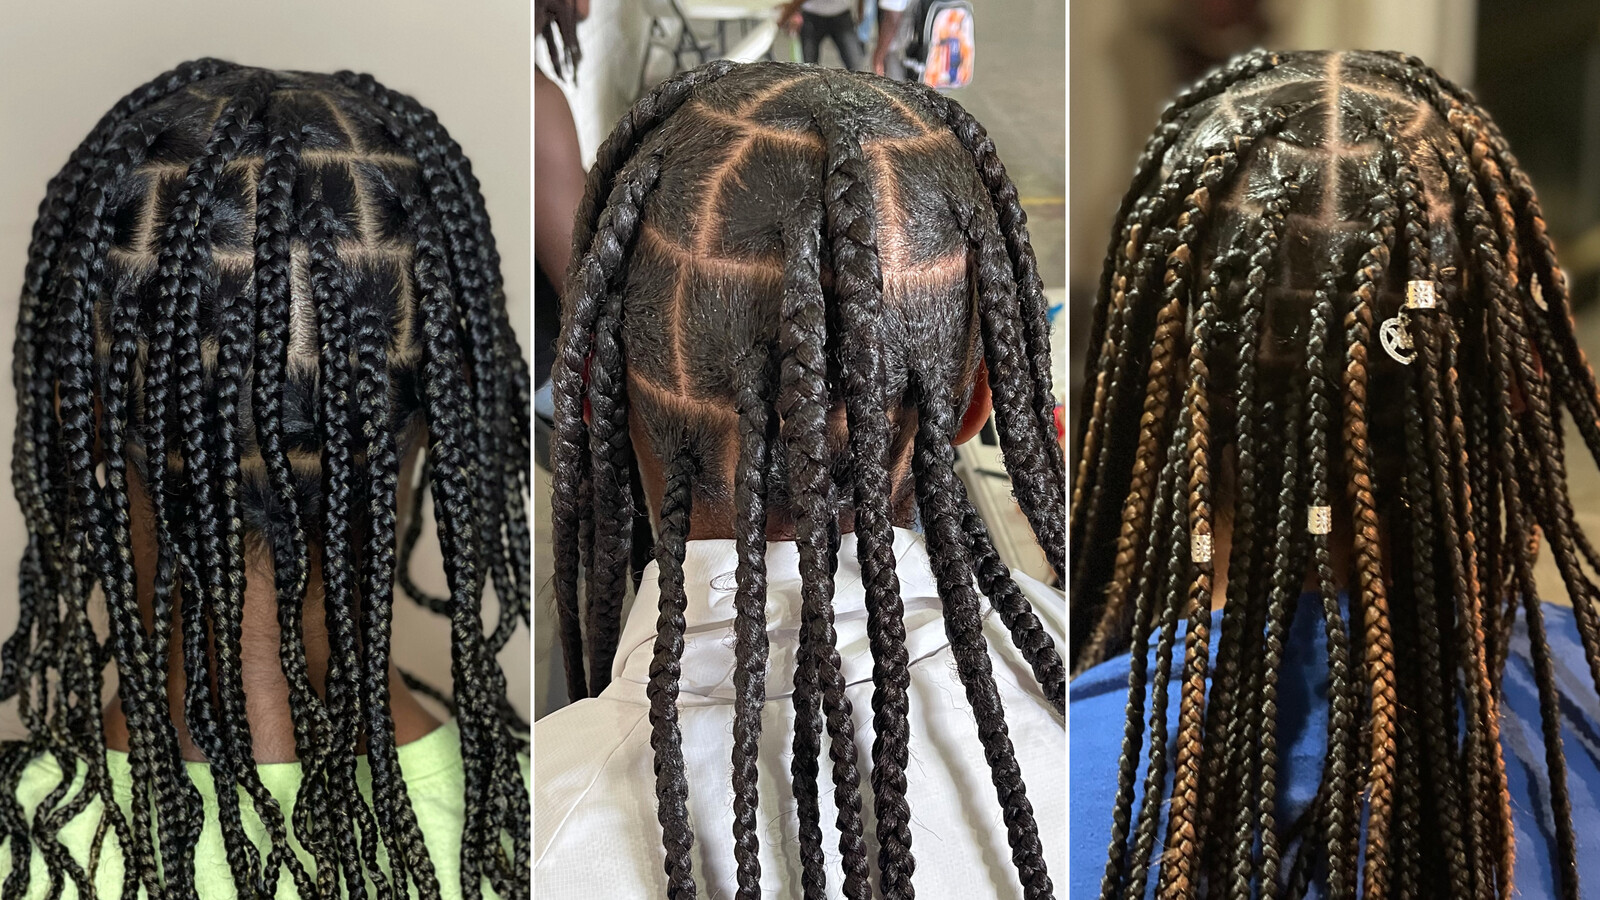 This single mom is braiding kids' hair for free to help other struggling parents